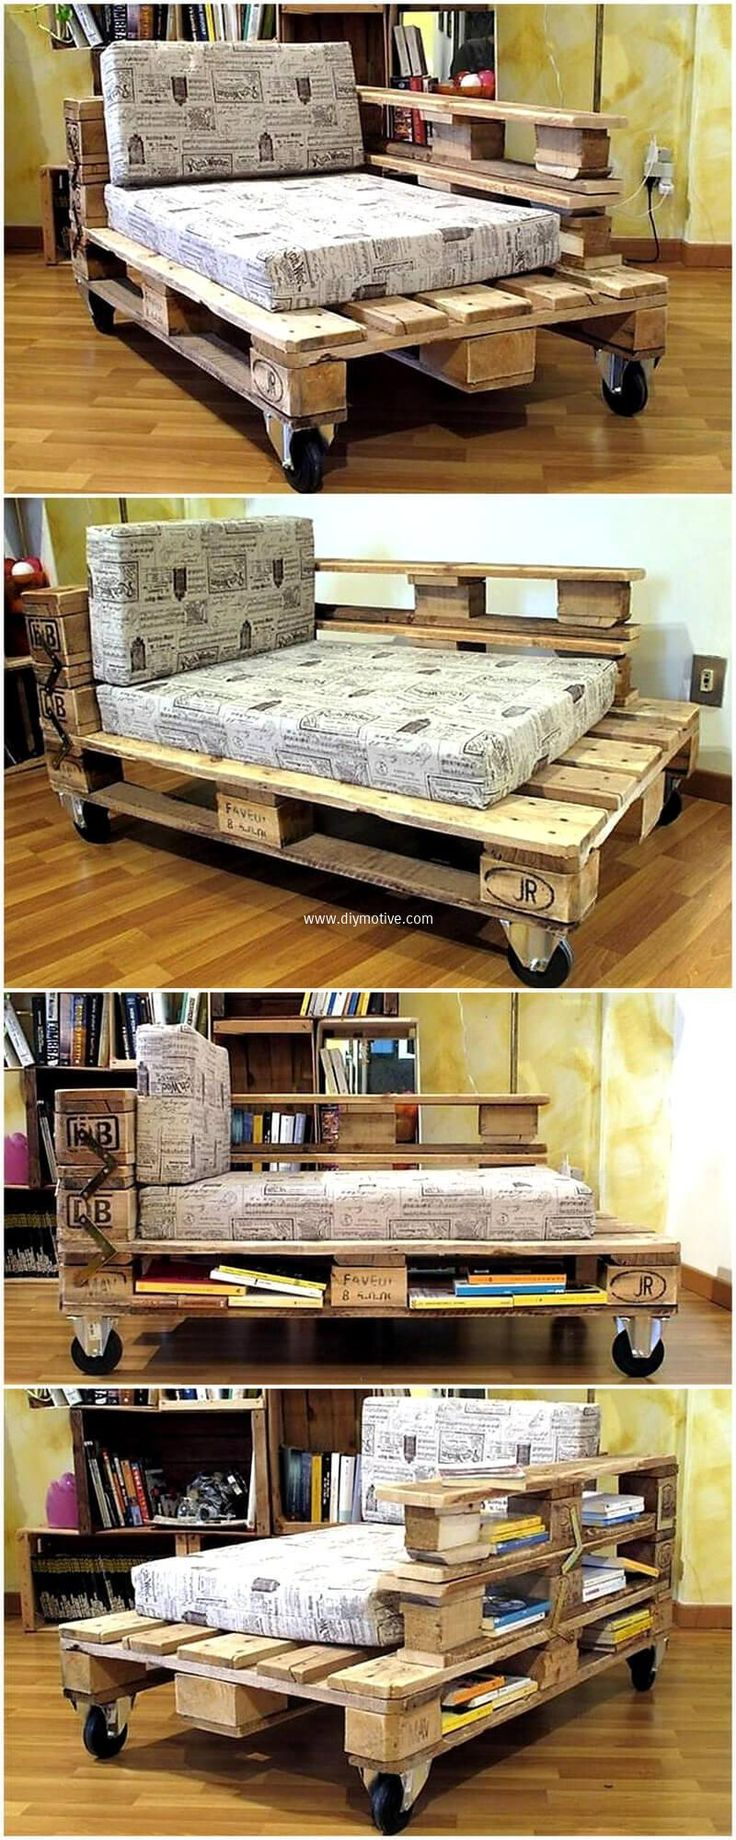 There is another amazing and wonderful craft of reused wood pallets for sitting purposes. Take wood pallets cut them into different dimensions then join them with the help of glue and nails. This inexpensive and easy to craft reused pallet daybed idea is providing utility and grace to your space.